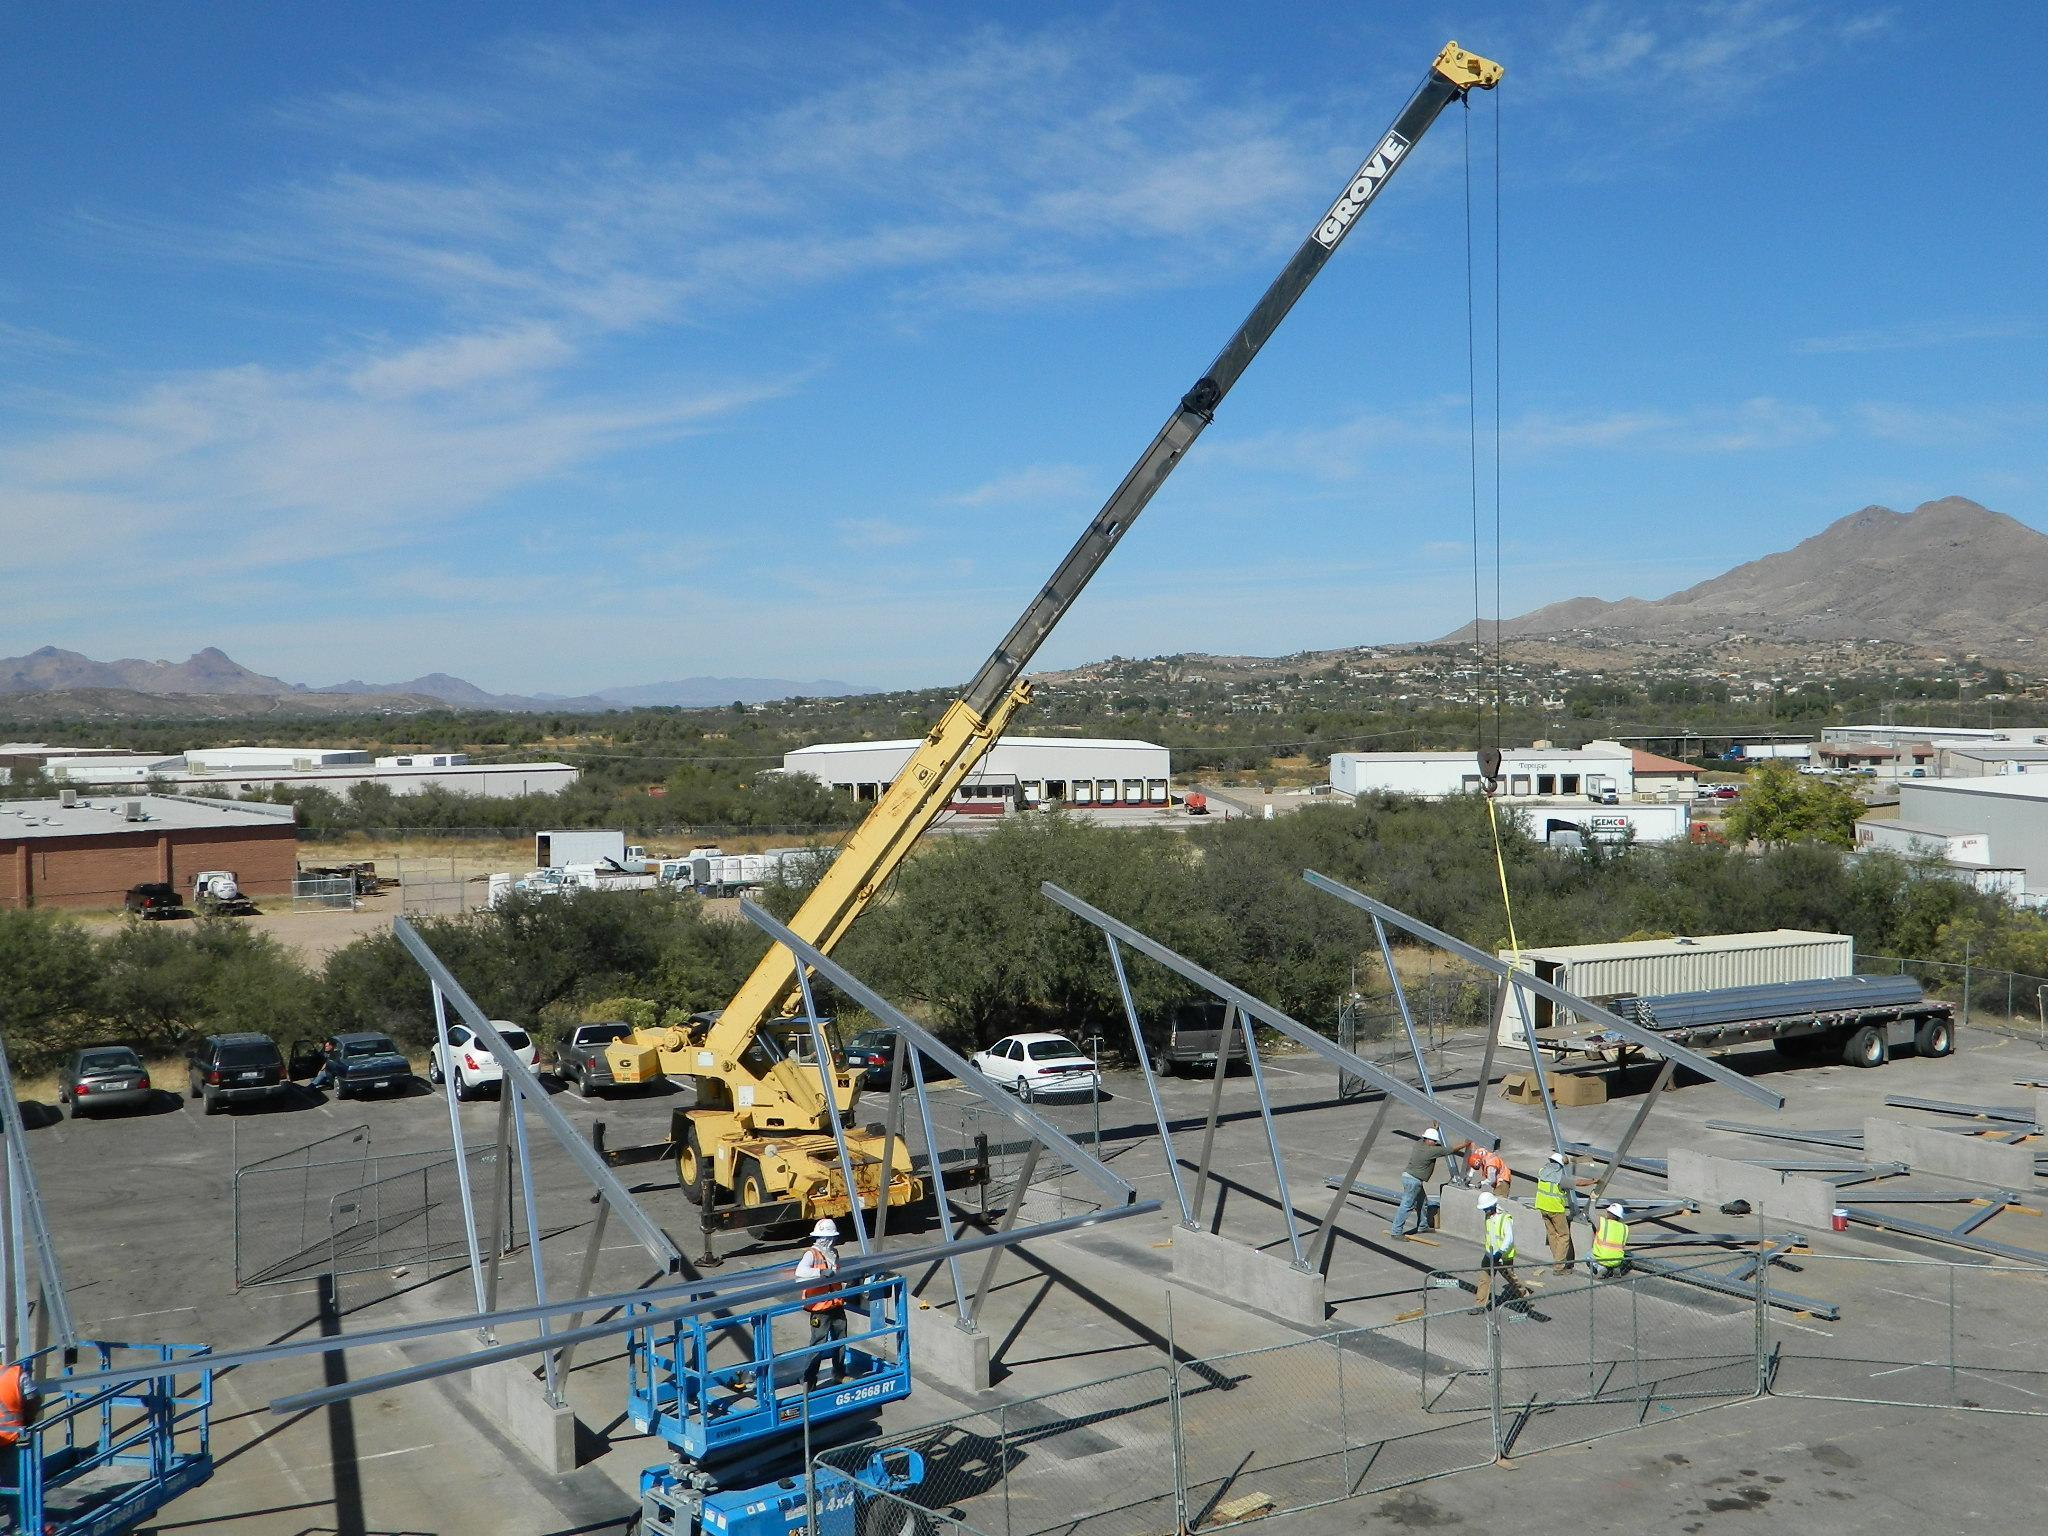 87kW Canopy project under construction in Rio Rico, Arizona for Charles E. GIllman Company.  Completed in 2012.